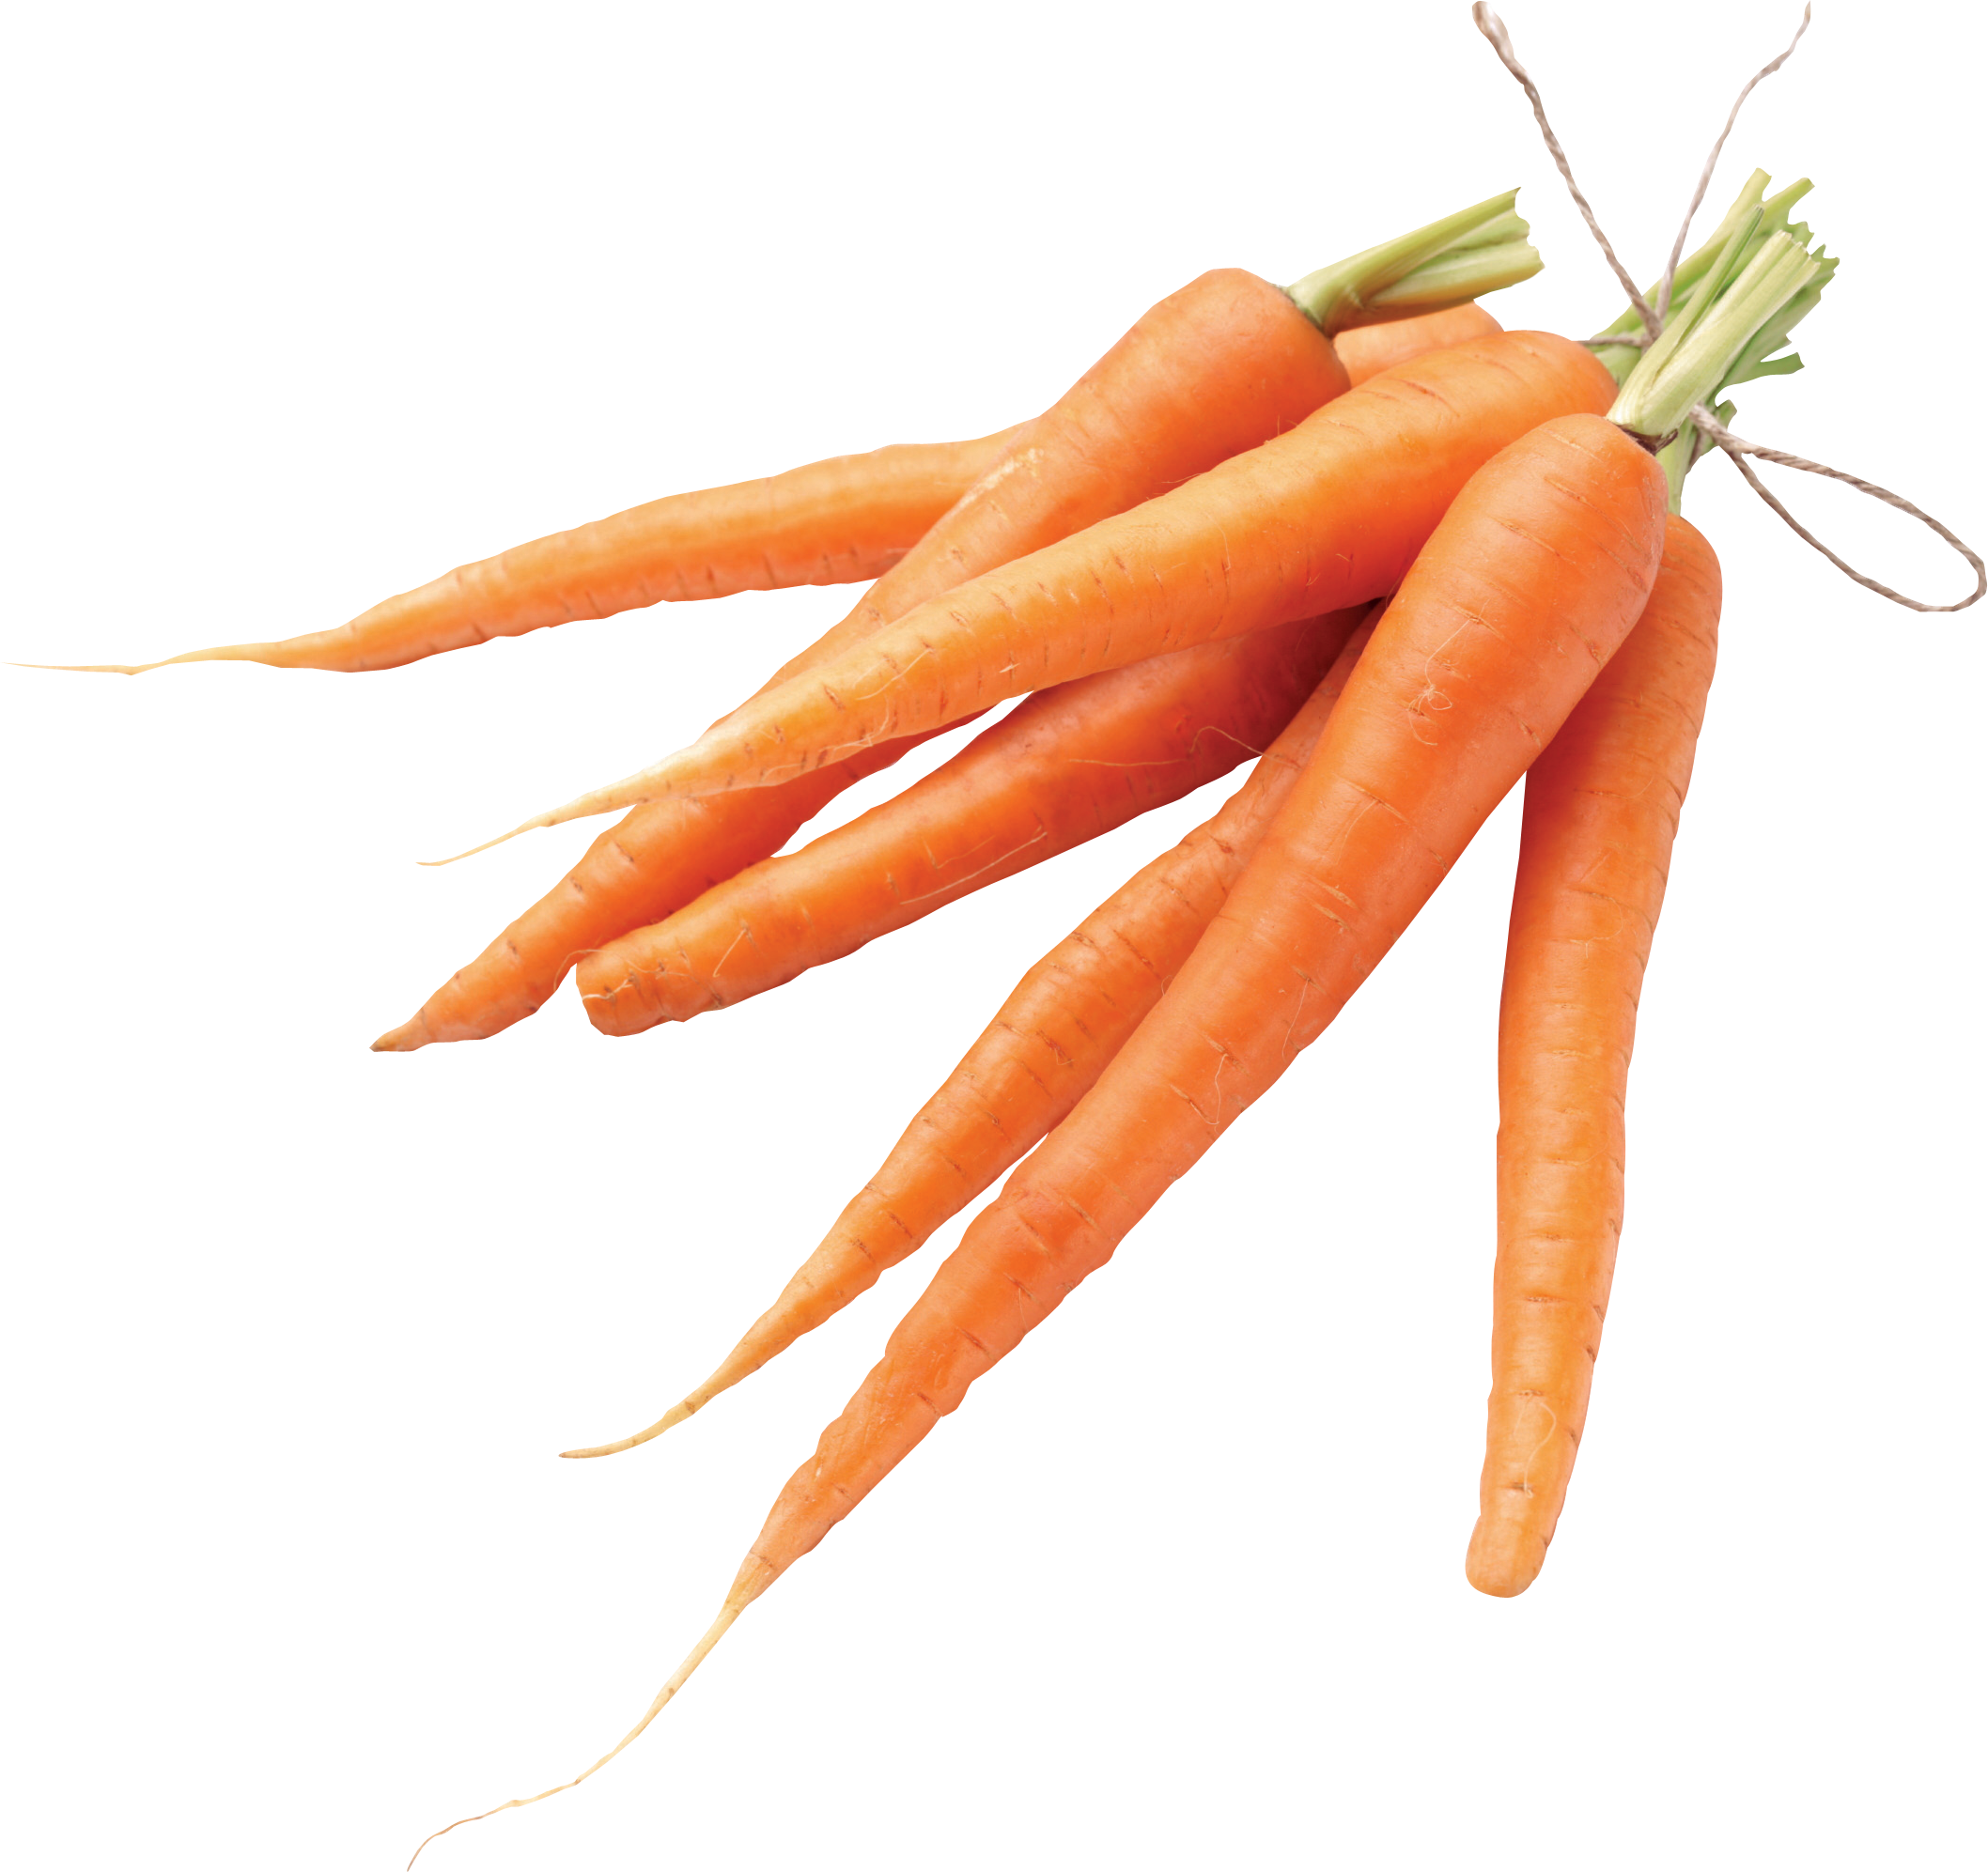 graphic download Buy purees fruit canadian. Vector carrot root vegetable